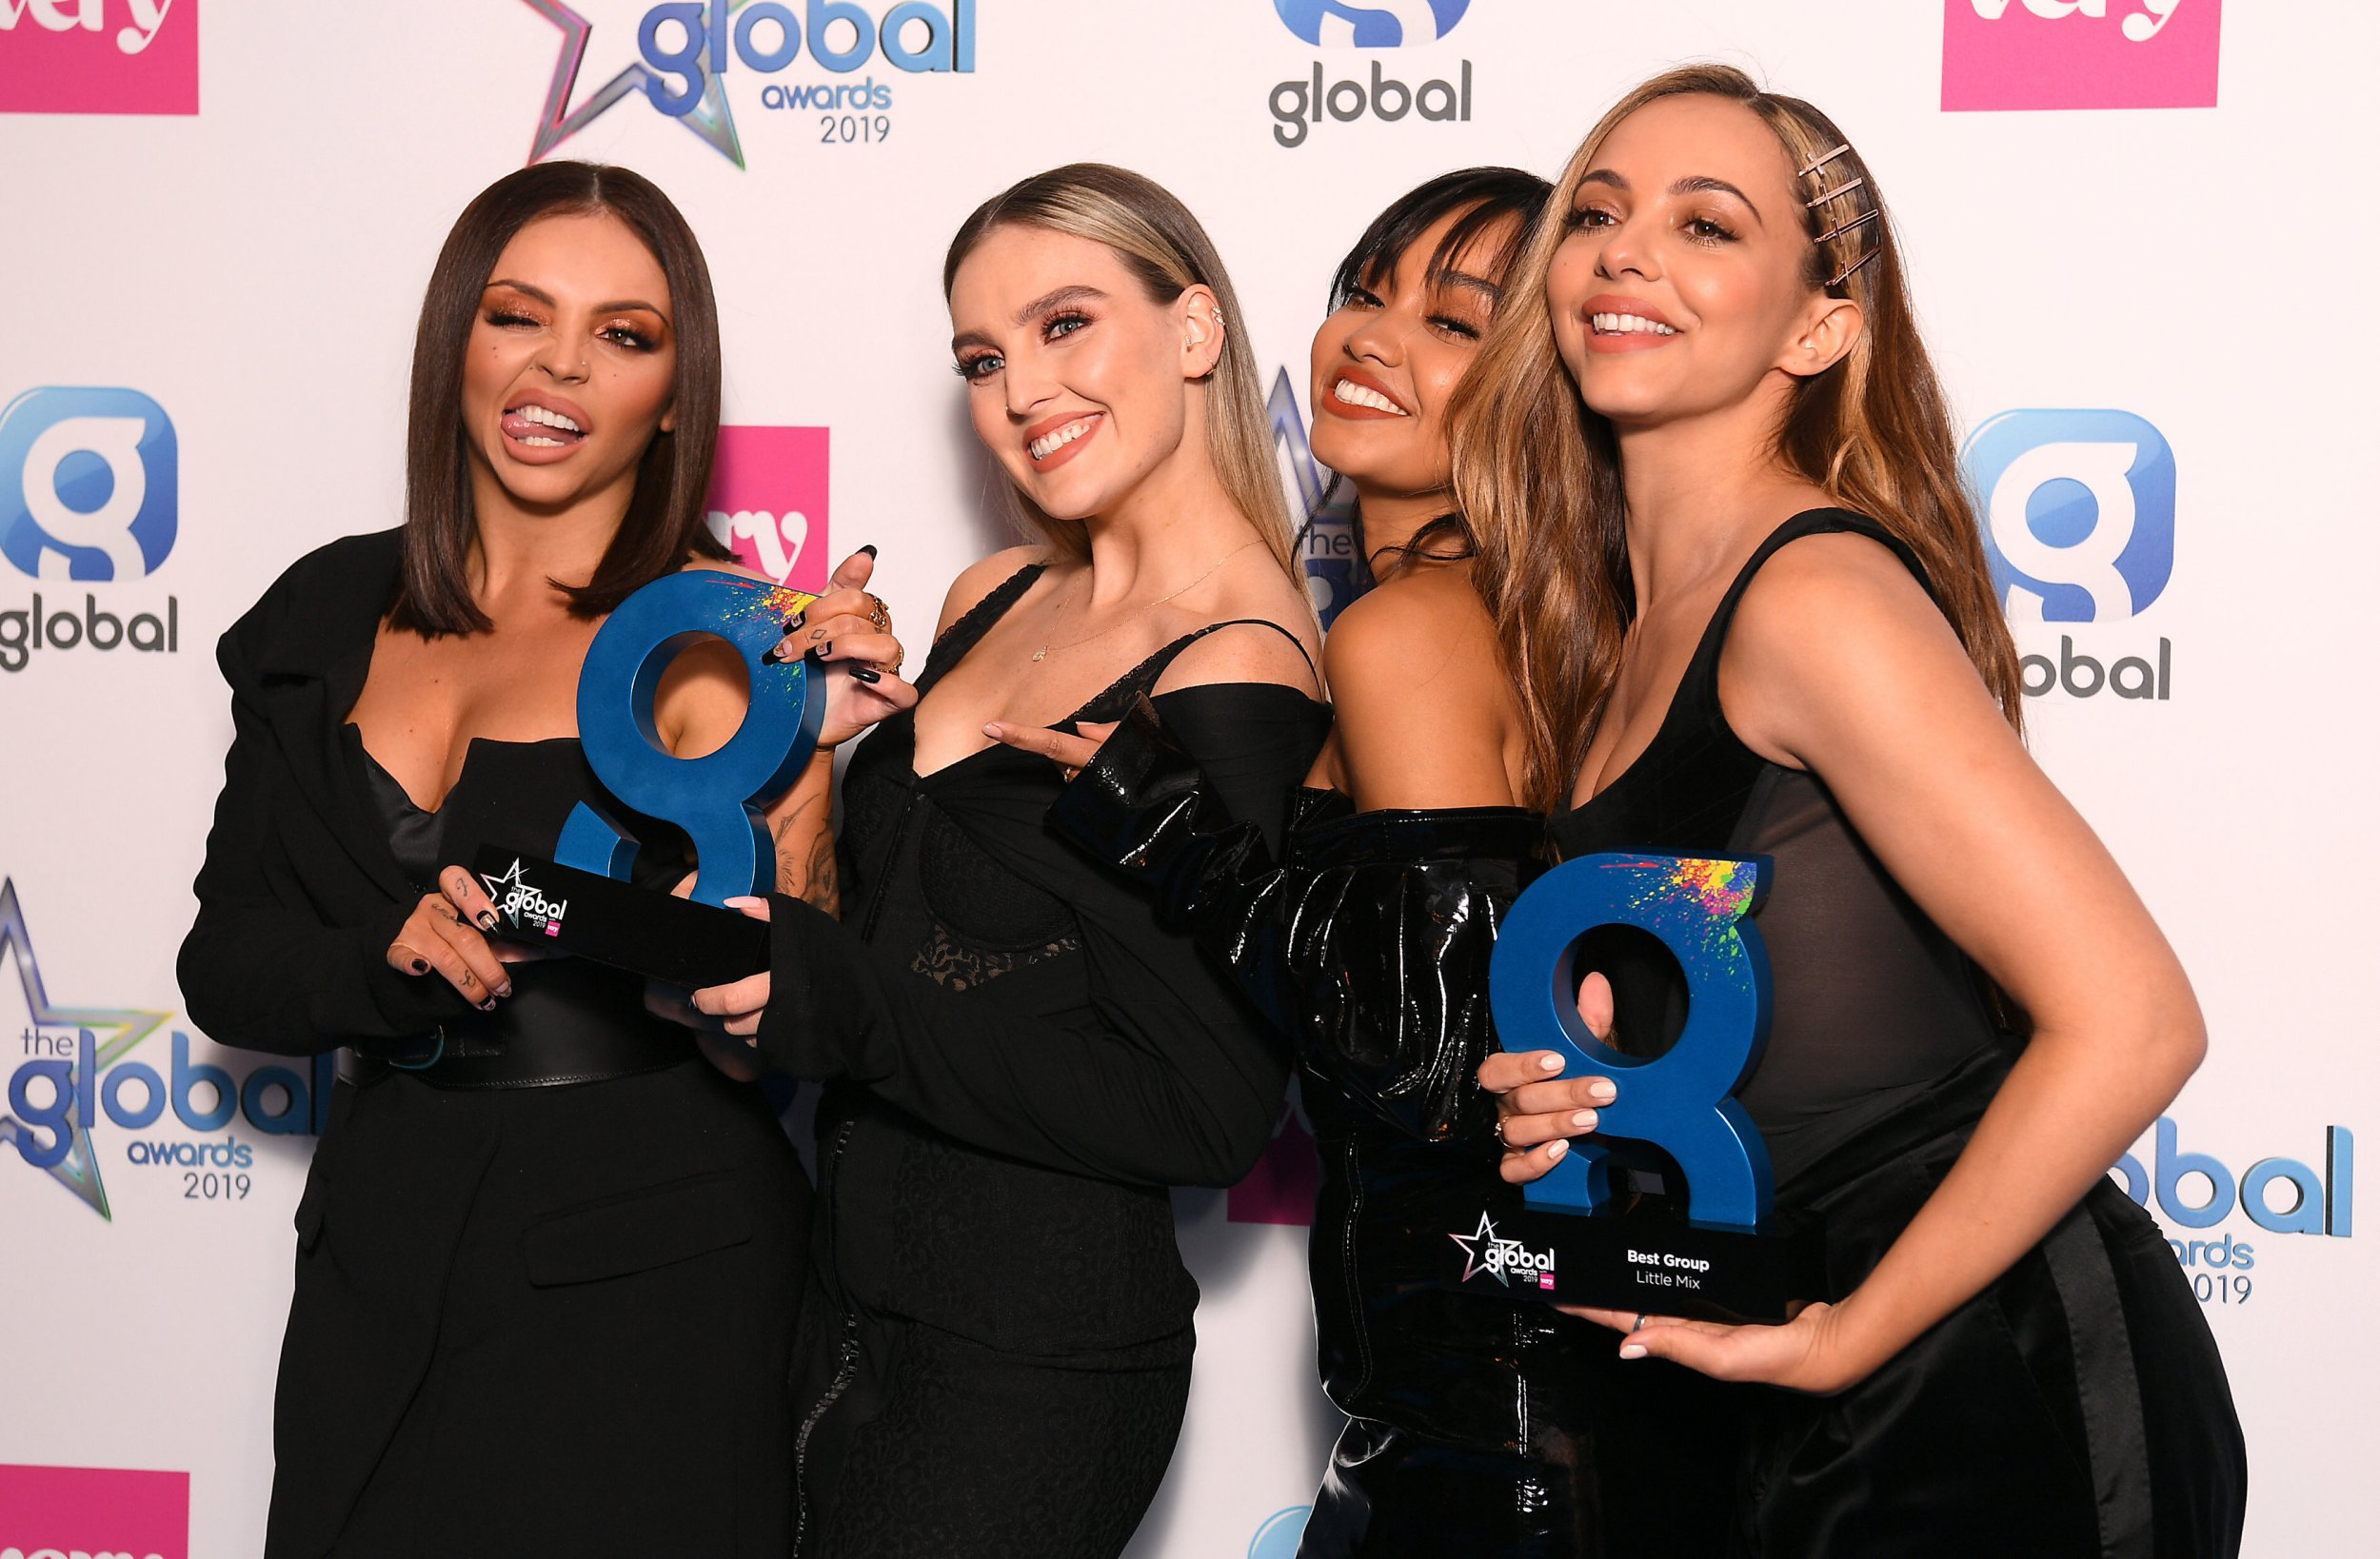 Little Mix win big at the Global Awards but won't go crazy celebrating as they're going teetotal